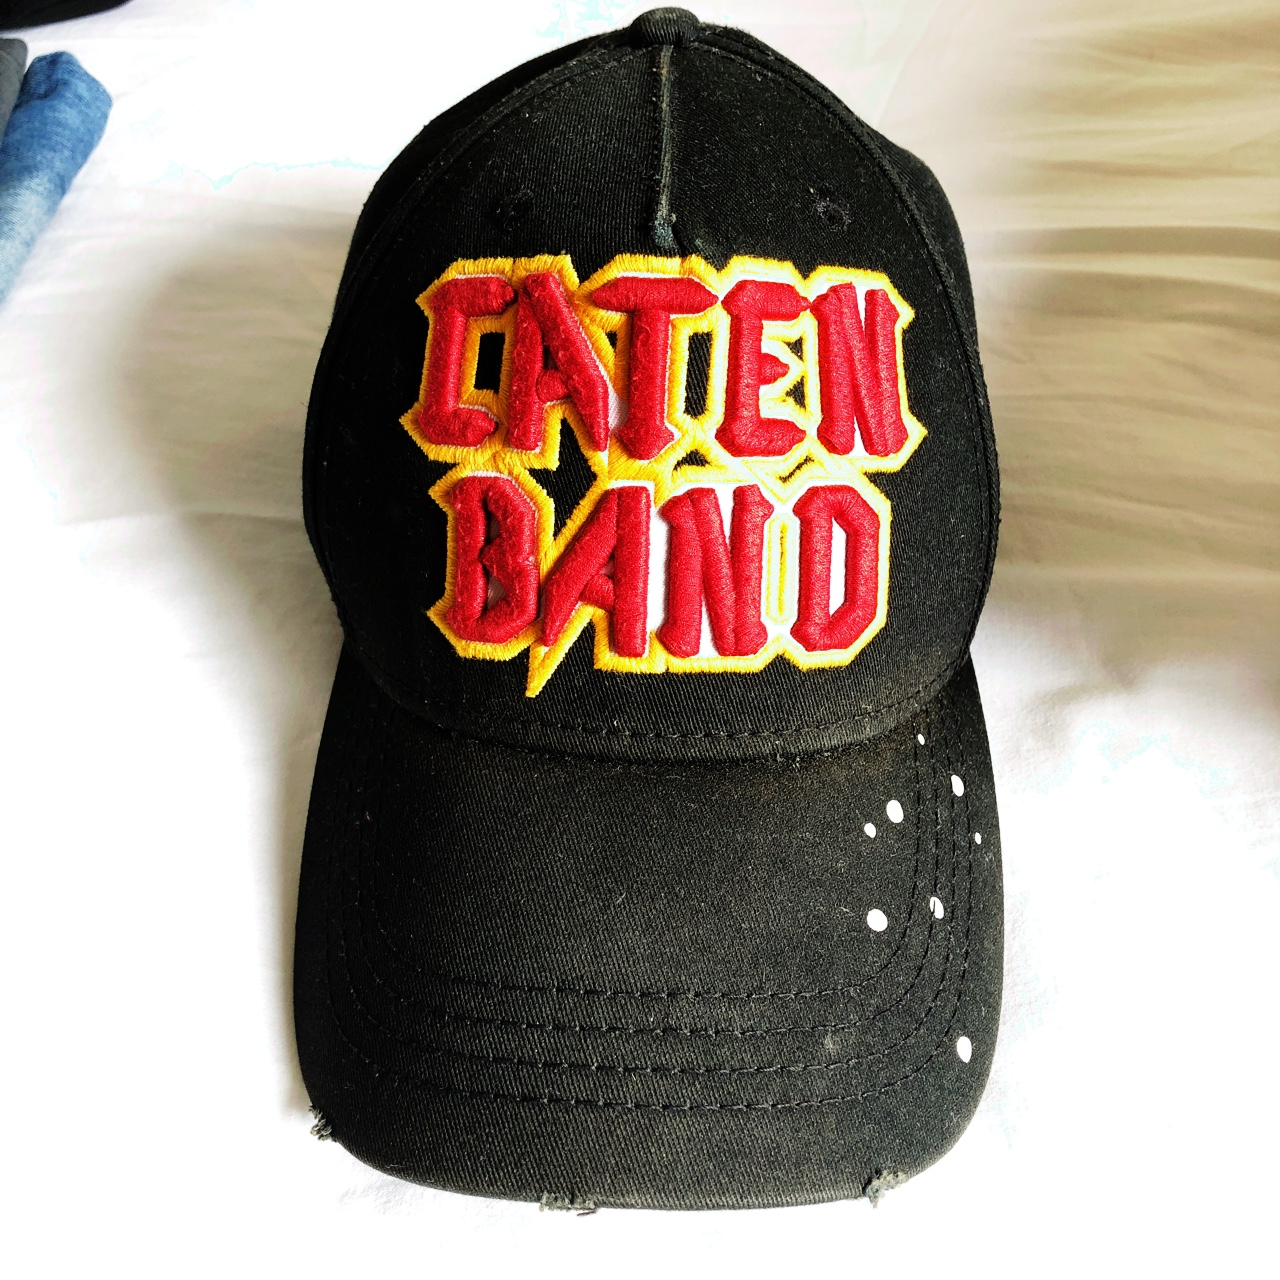 bf709d8e3 Dsquared2 Caten Band Cap Very rare Excellent... - Depop